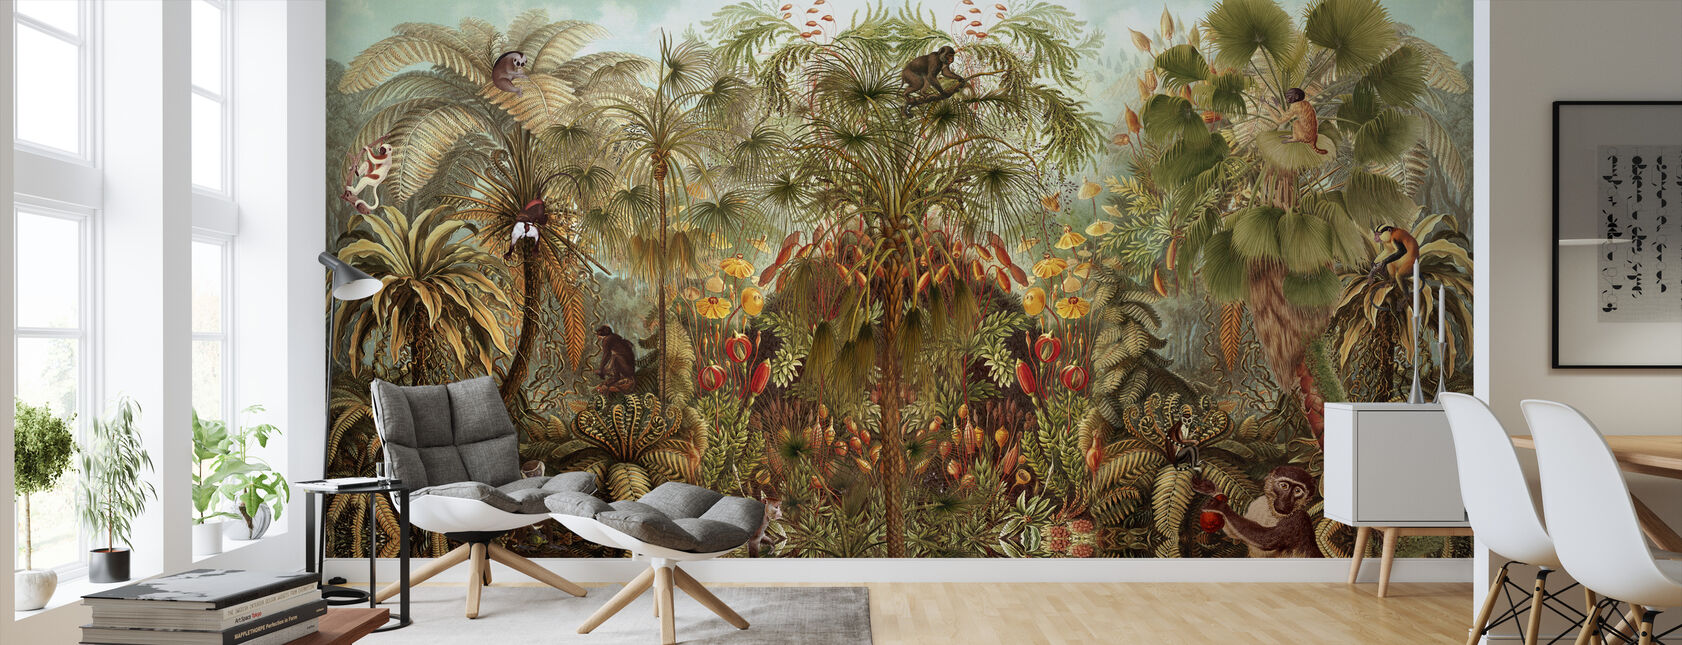 Monkey See Monkey Wah - Wallpaper - Living Room